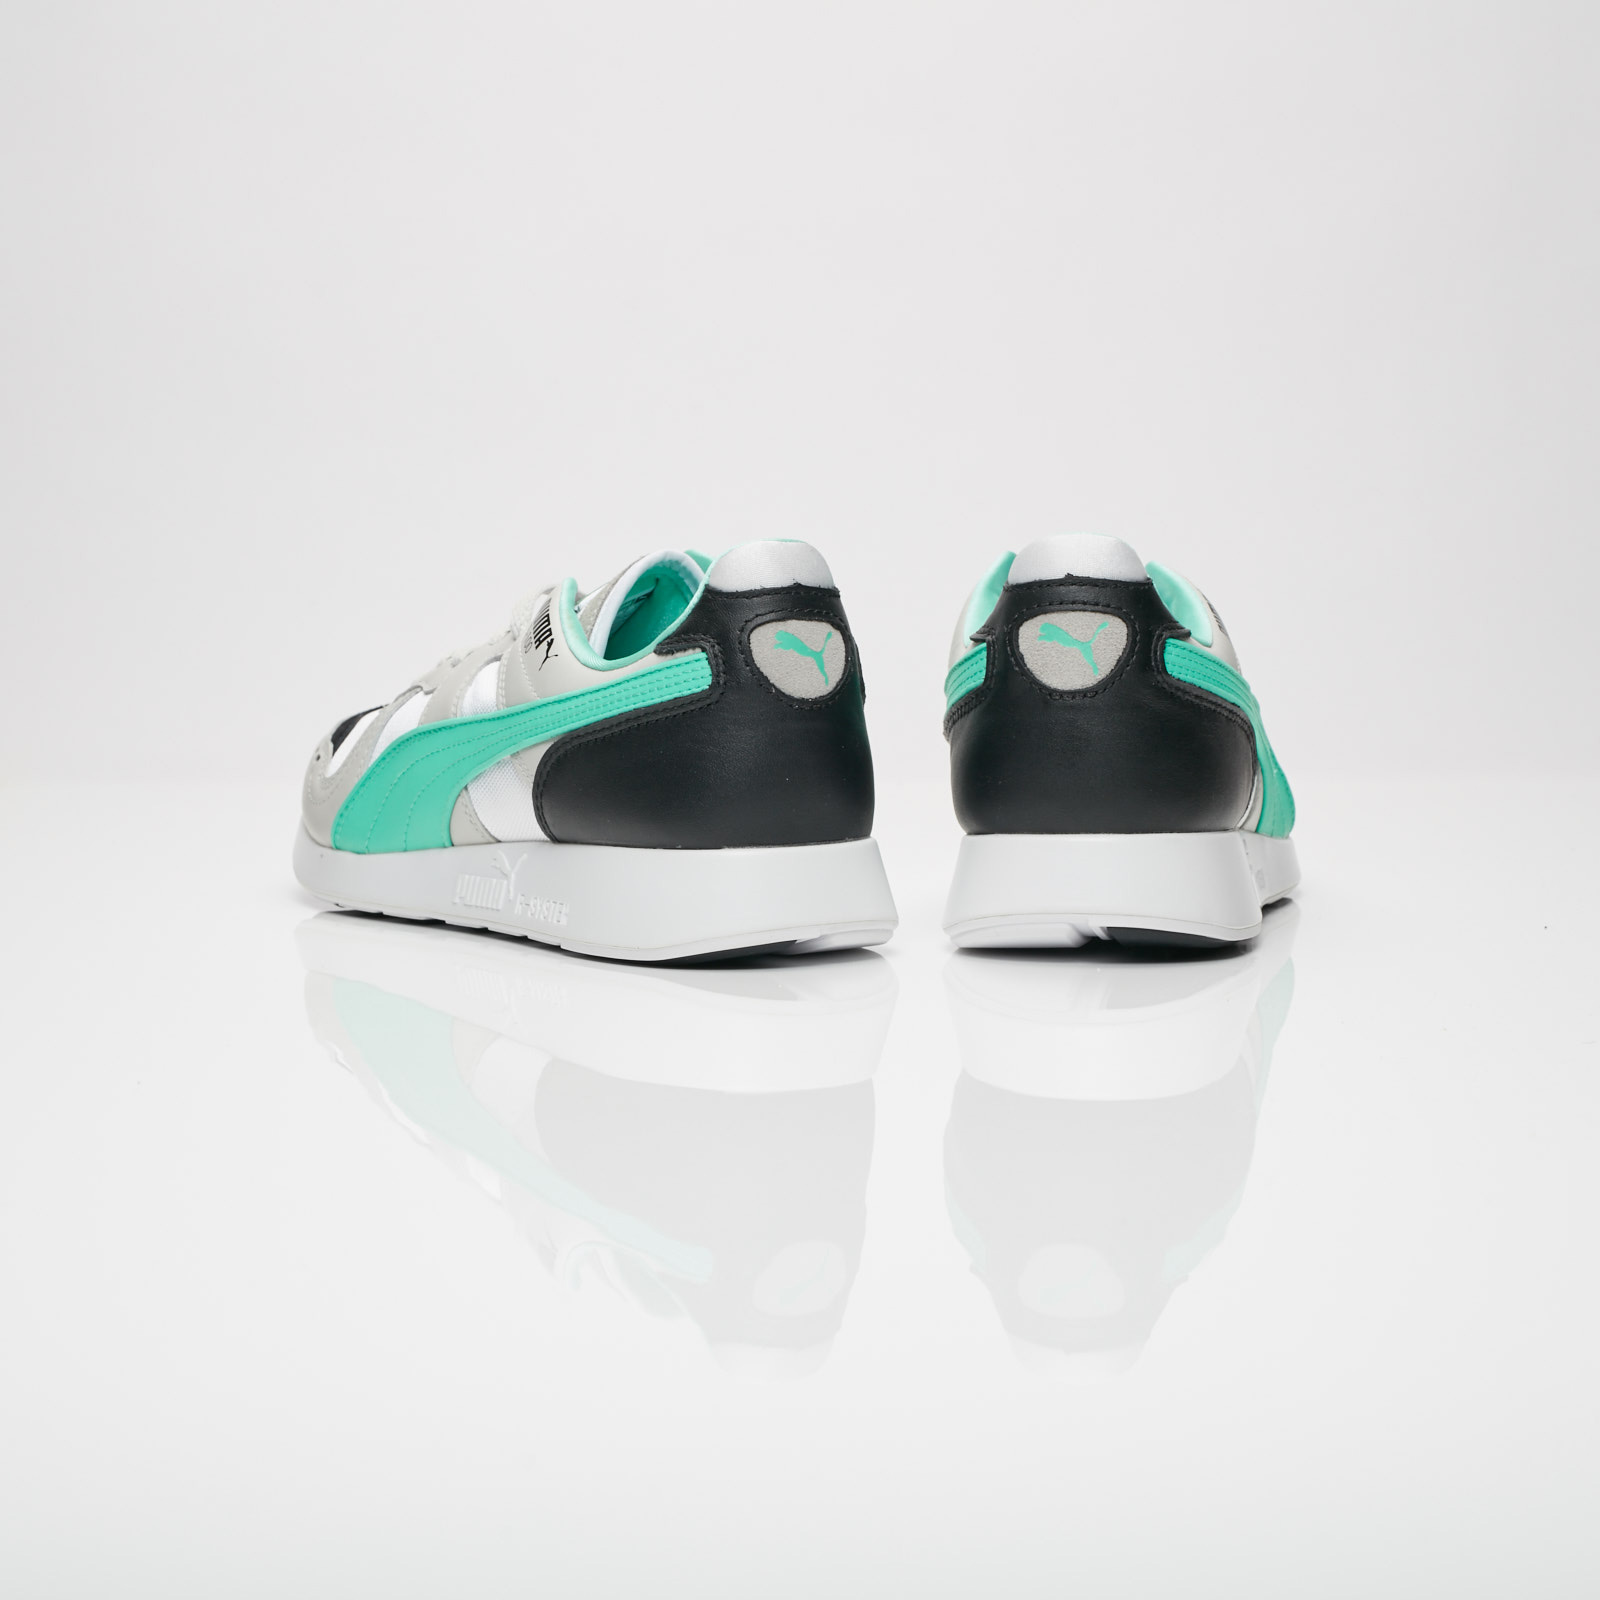 timeless design ac1f0 69d84 Puma RS-100 Re-Invention - 367913-01 - Sneakersnstuff | sneakers &  streetwear online since 1999